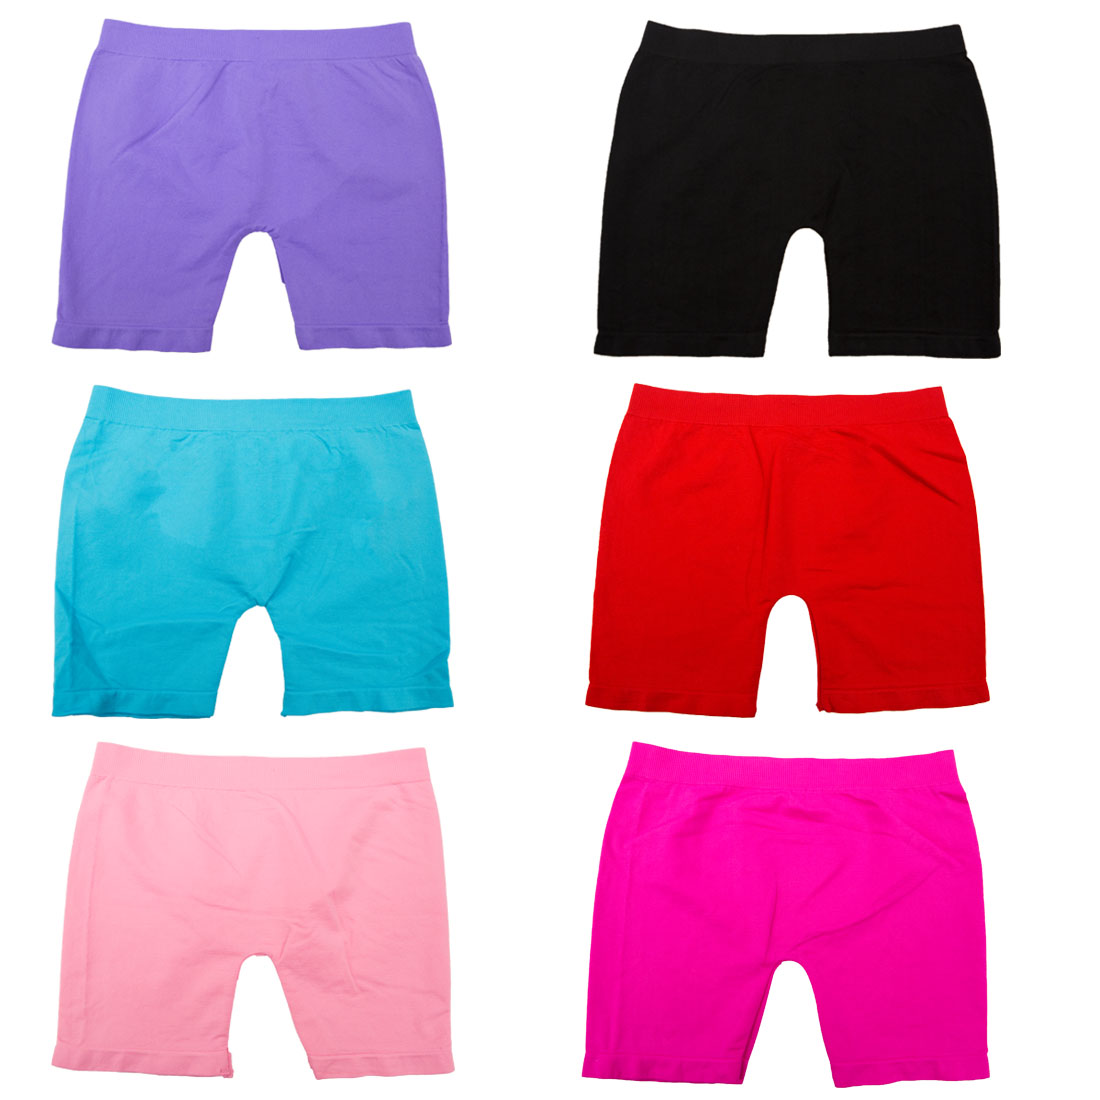 bc0ad52198ccc Angel - Girls Seamless Solid Color Short Leggings (6 Pack) Small -  Walmart.com